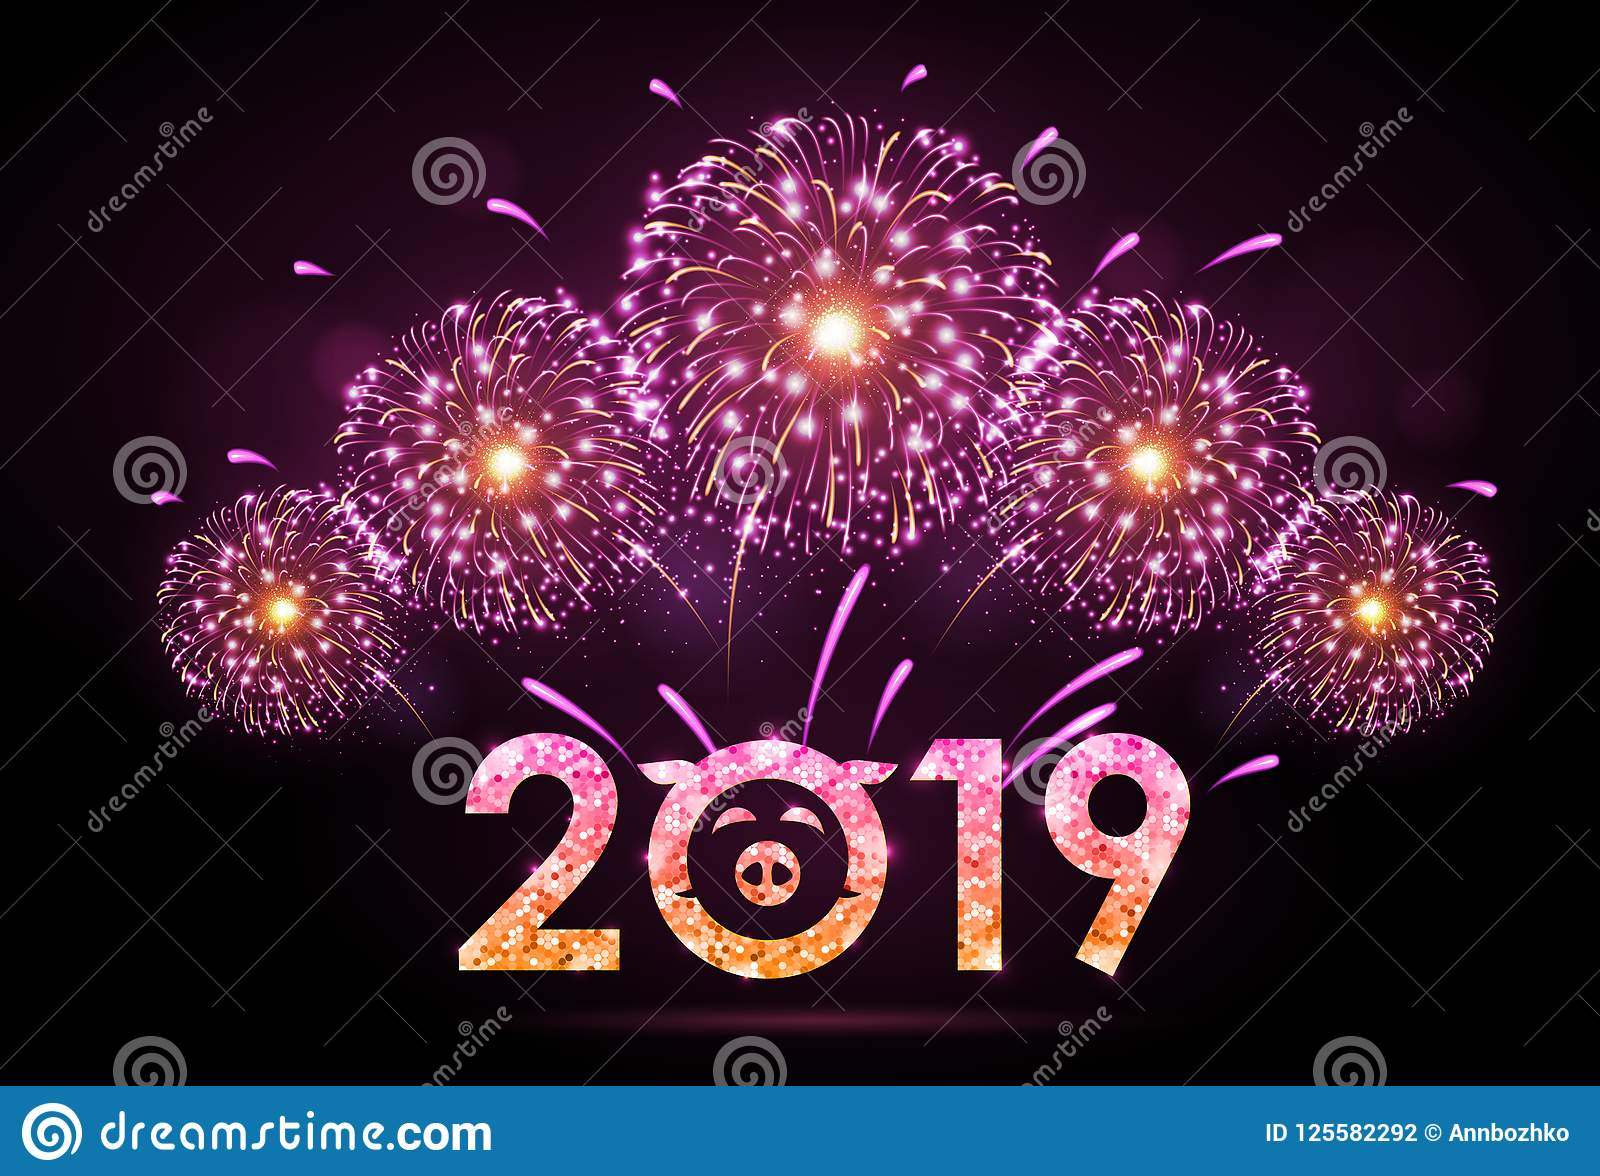 vector holiday festival pink firework happy new year card